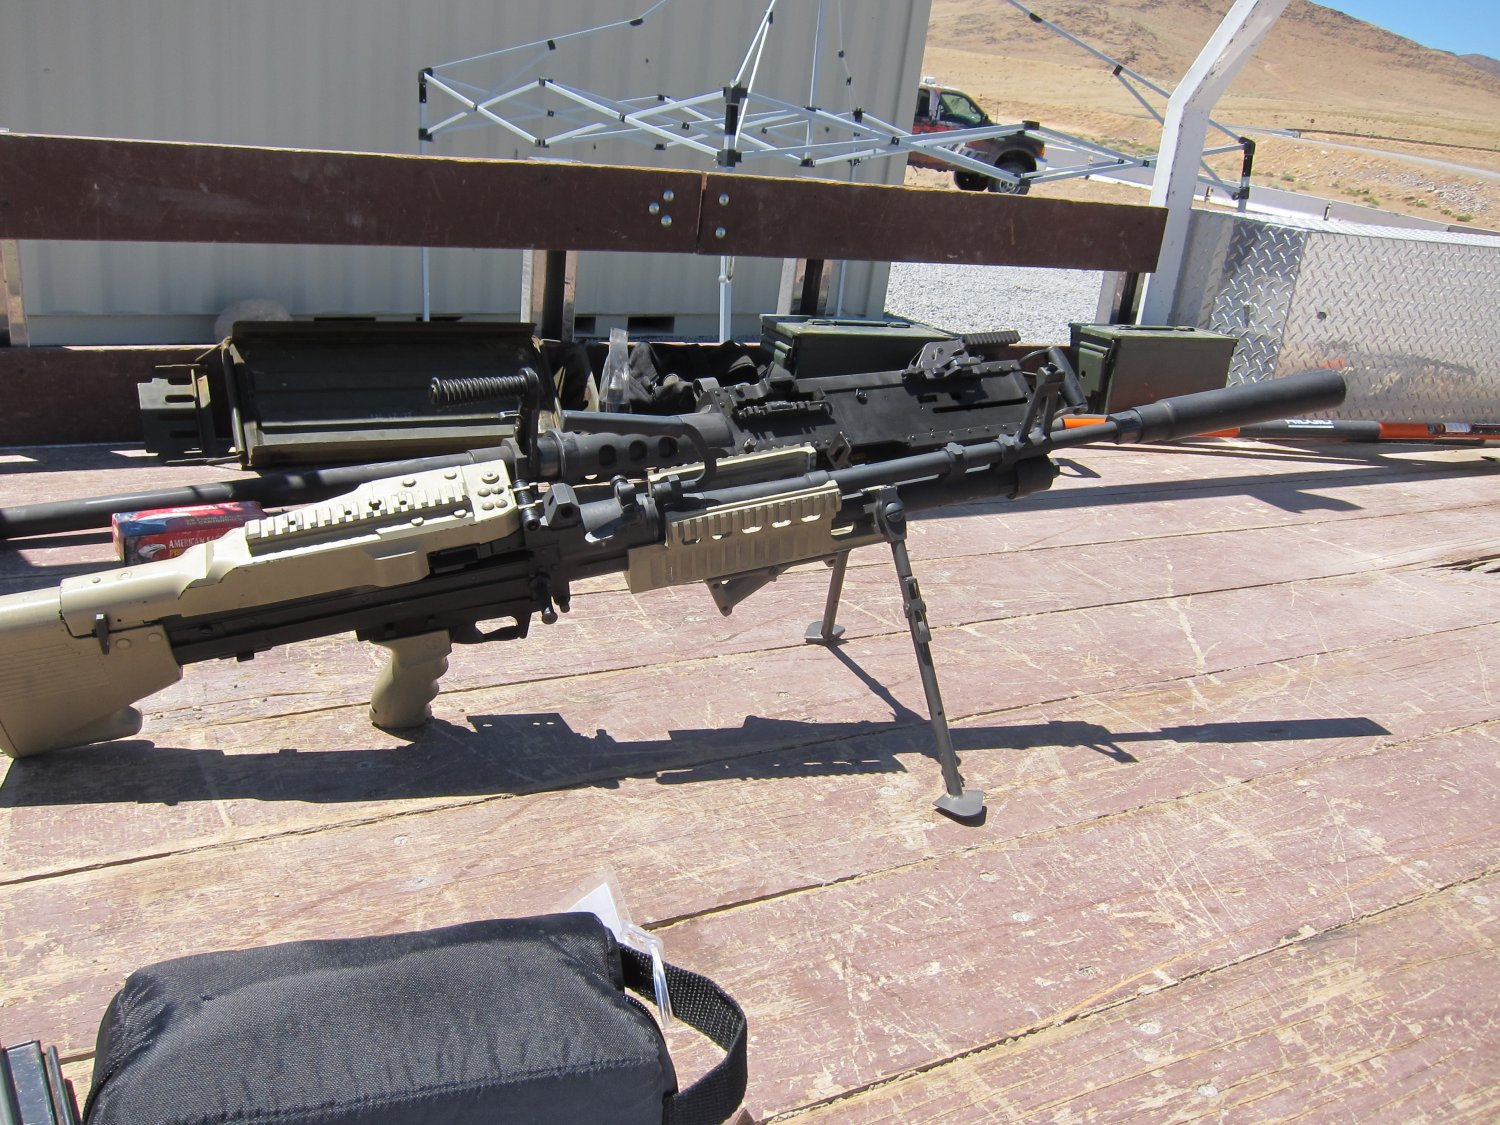 U.S. Ordnance Mk43 Mod 1 M60E4 Medium Machine Gun 7.62mm MMG Future Version 7 <!  :en  >U.S. Ordnance Mk43 Mod 1/M60E4 Commando 7.62mm NATO Medium Machine Gun (MMG) for Special Operations Forces (U.S. Navy SEALs): Latest Version Weapon Gets Test Fired at the Range (Video!) <!  :  >